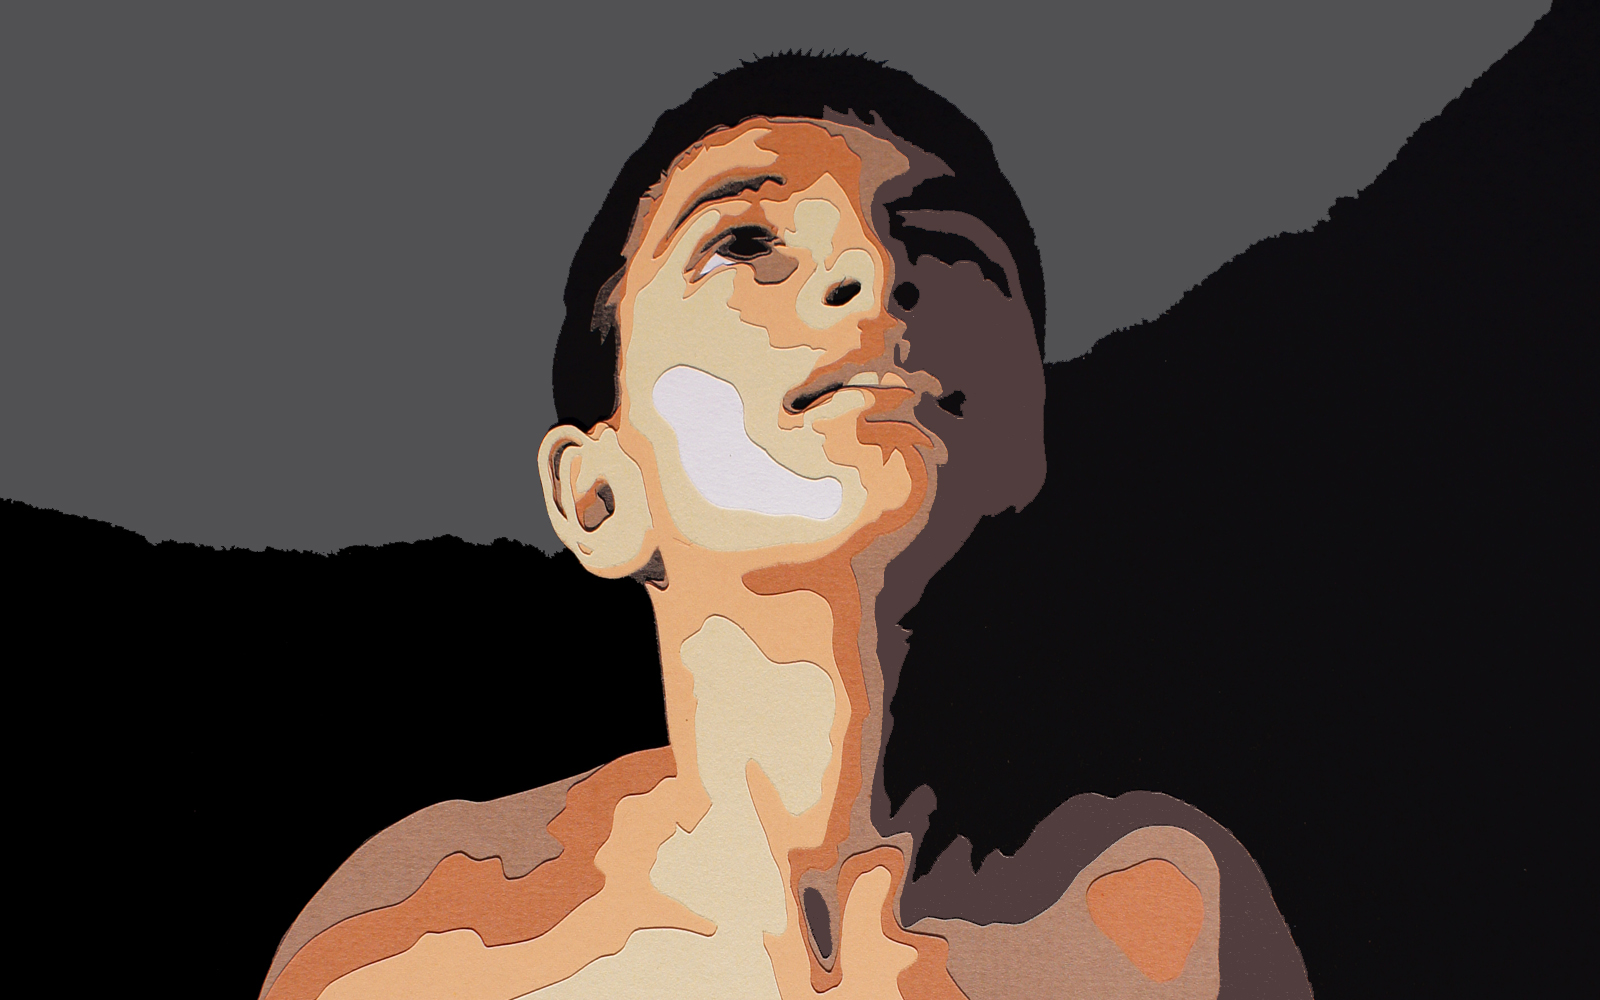 In the Light, cut paper collage, Mike Tedder